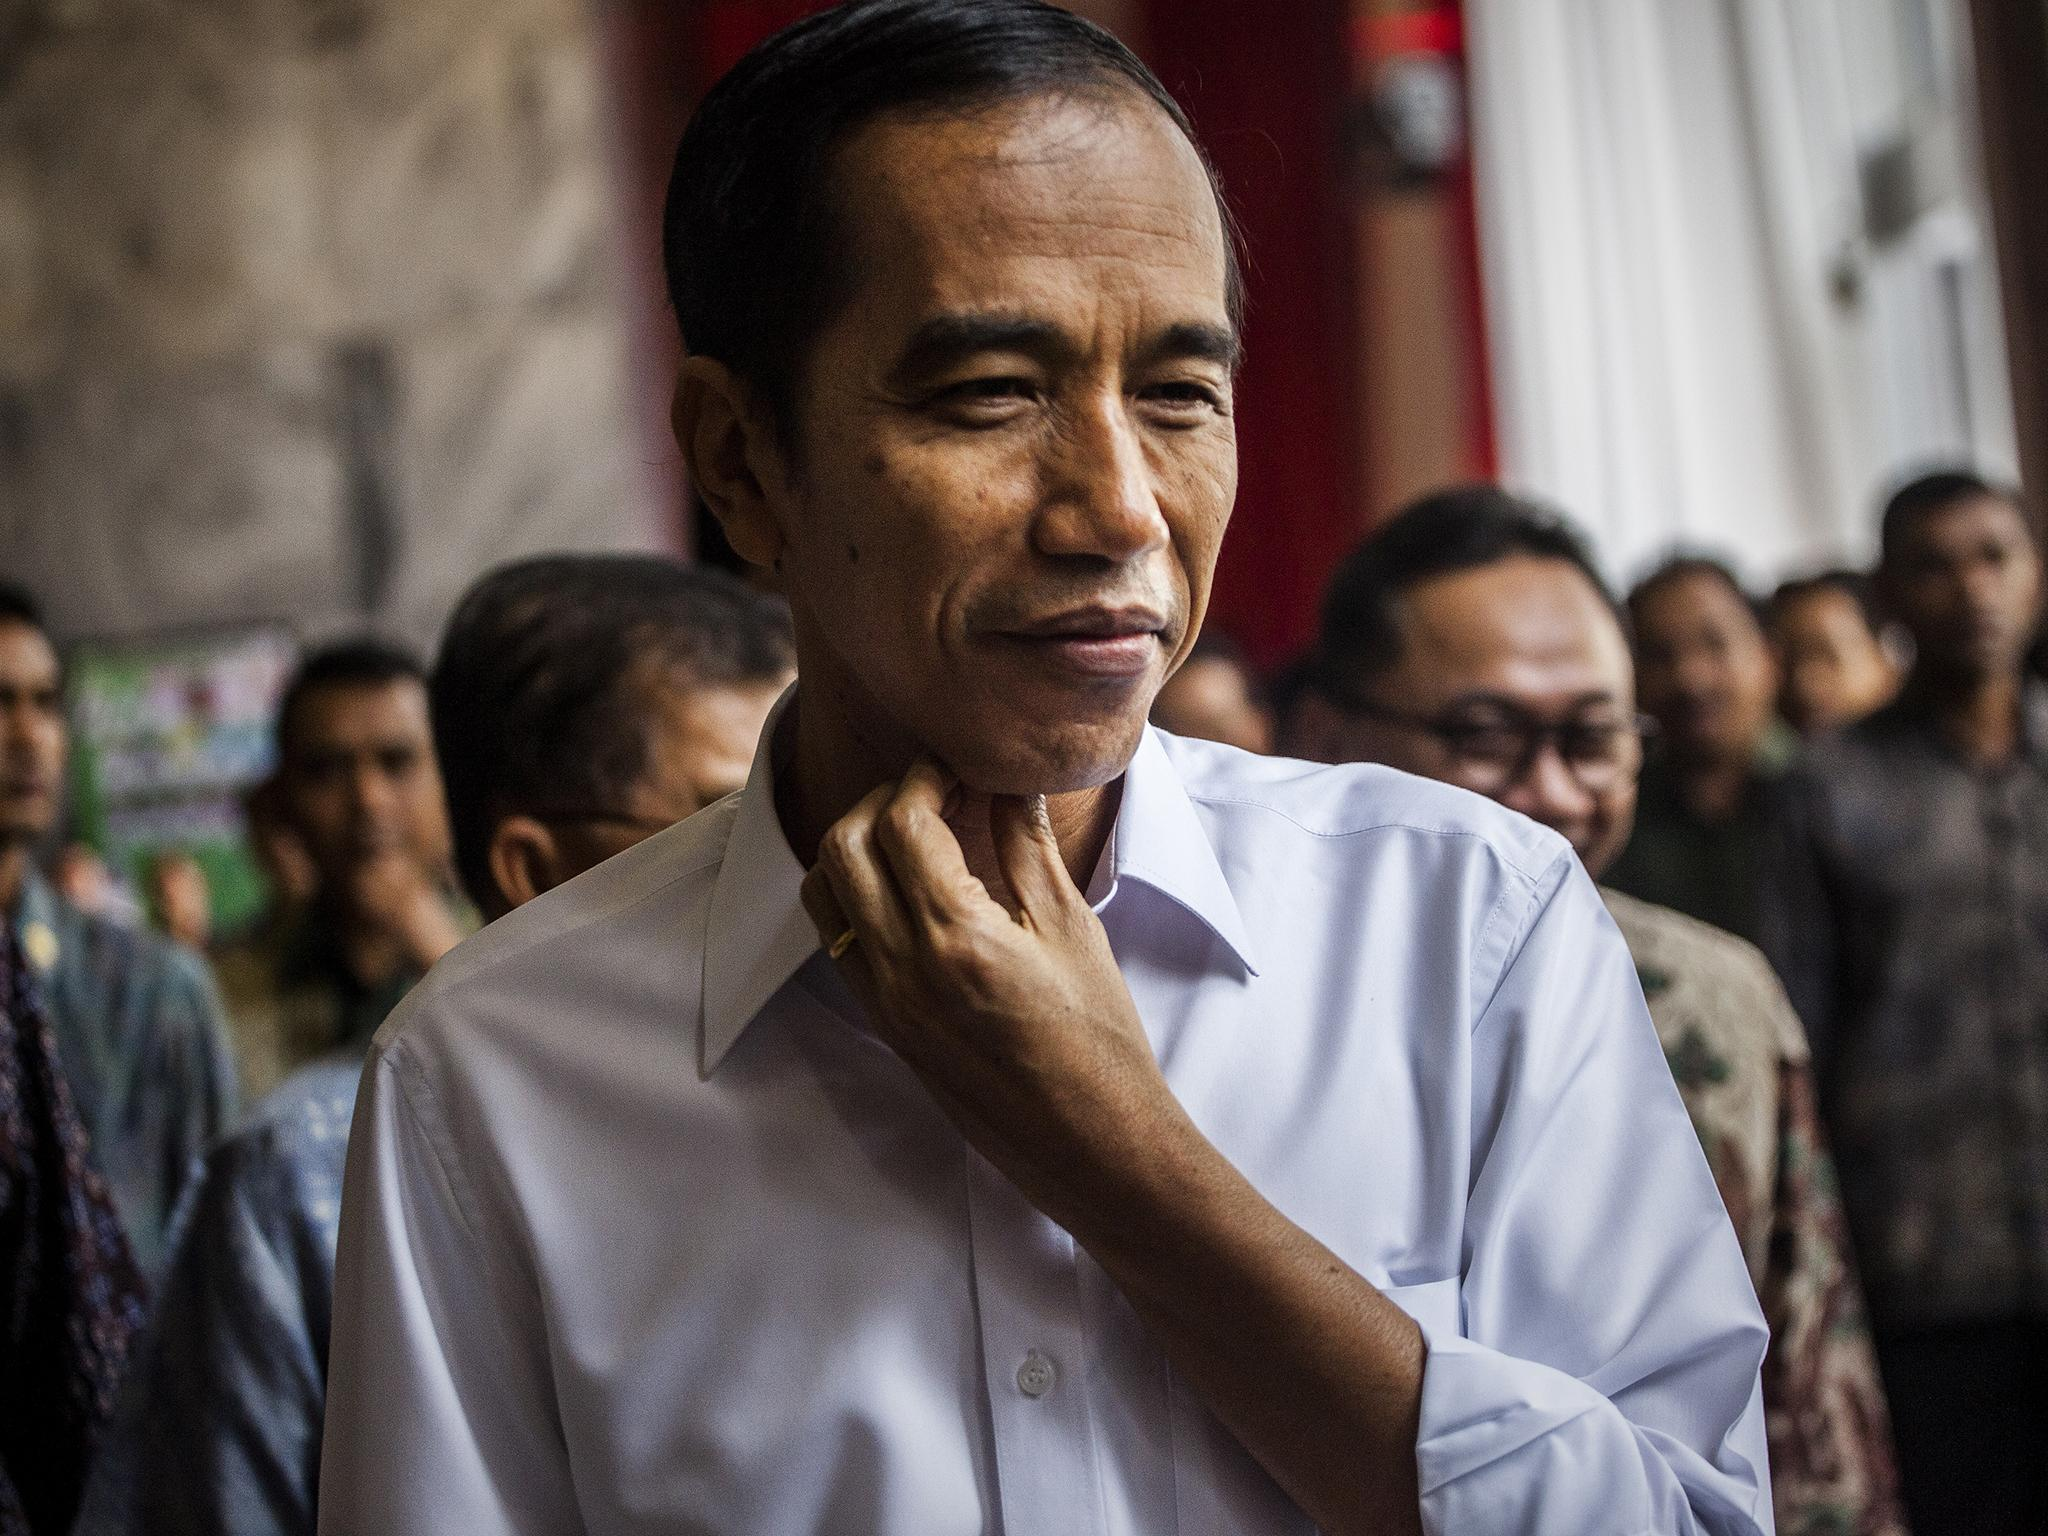 Indonesia To Make Sex Outside Marriage Illegal The Independent